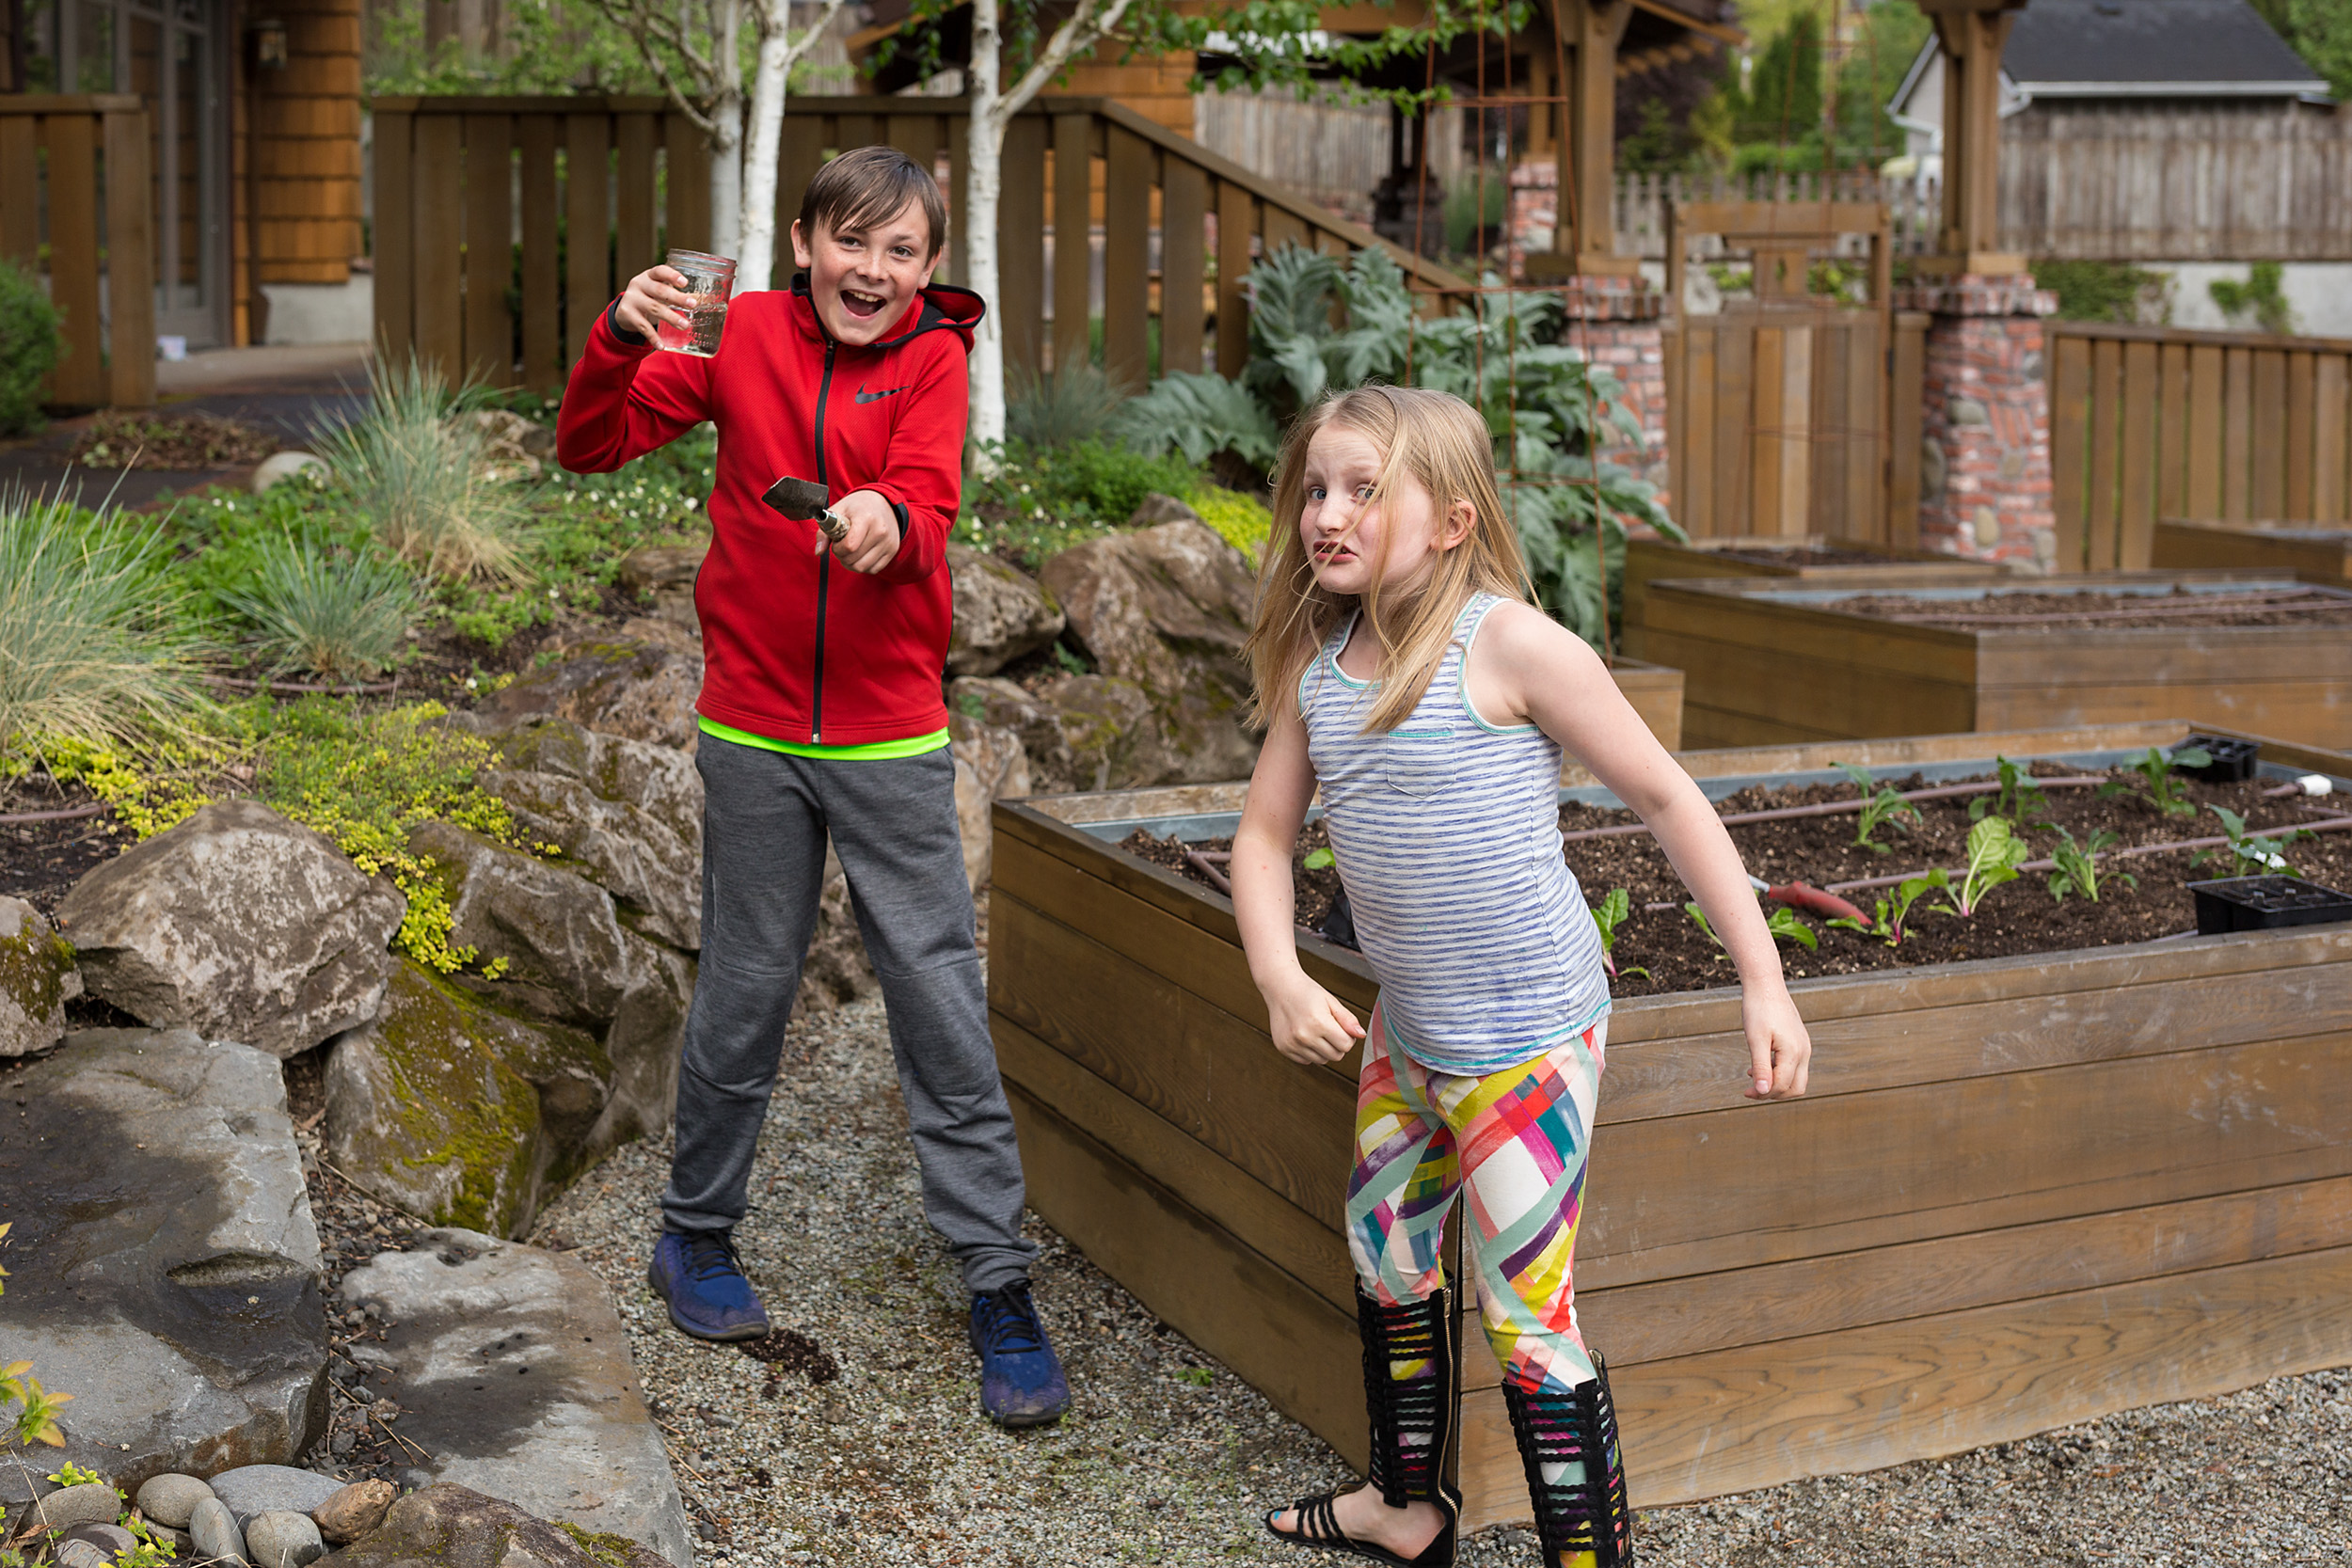 boy laughing and sister angry after their water fight